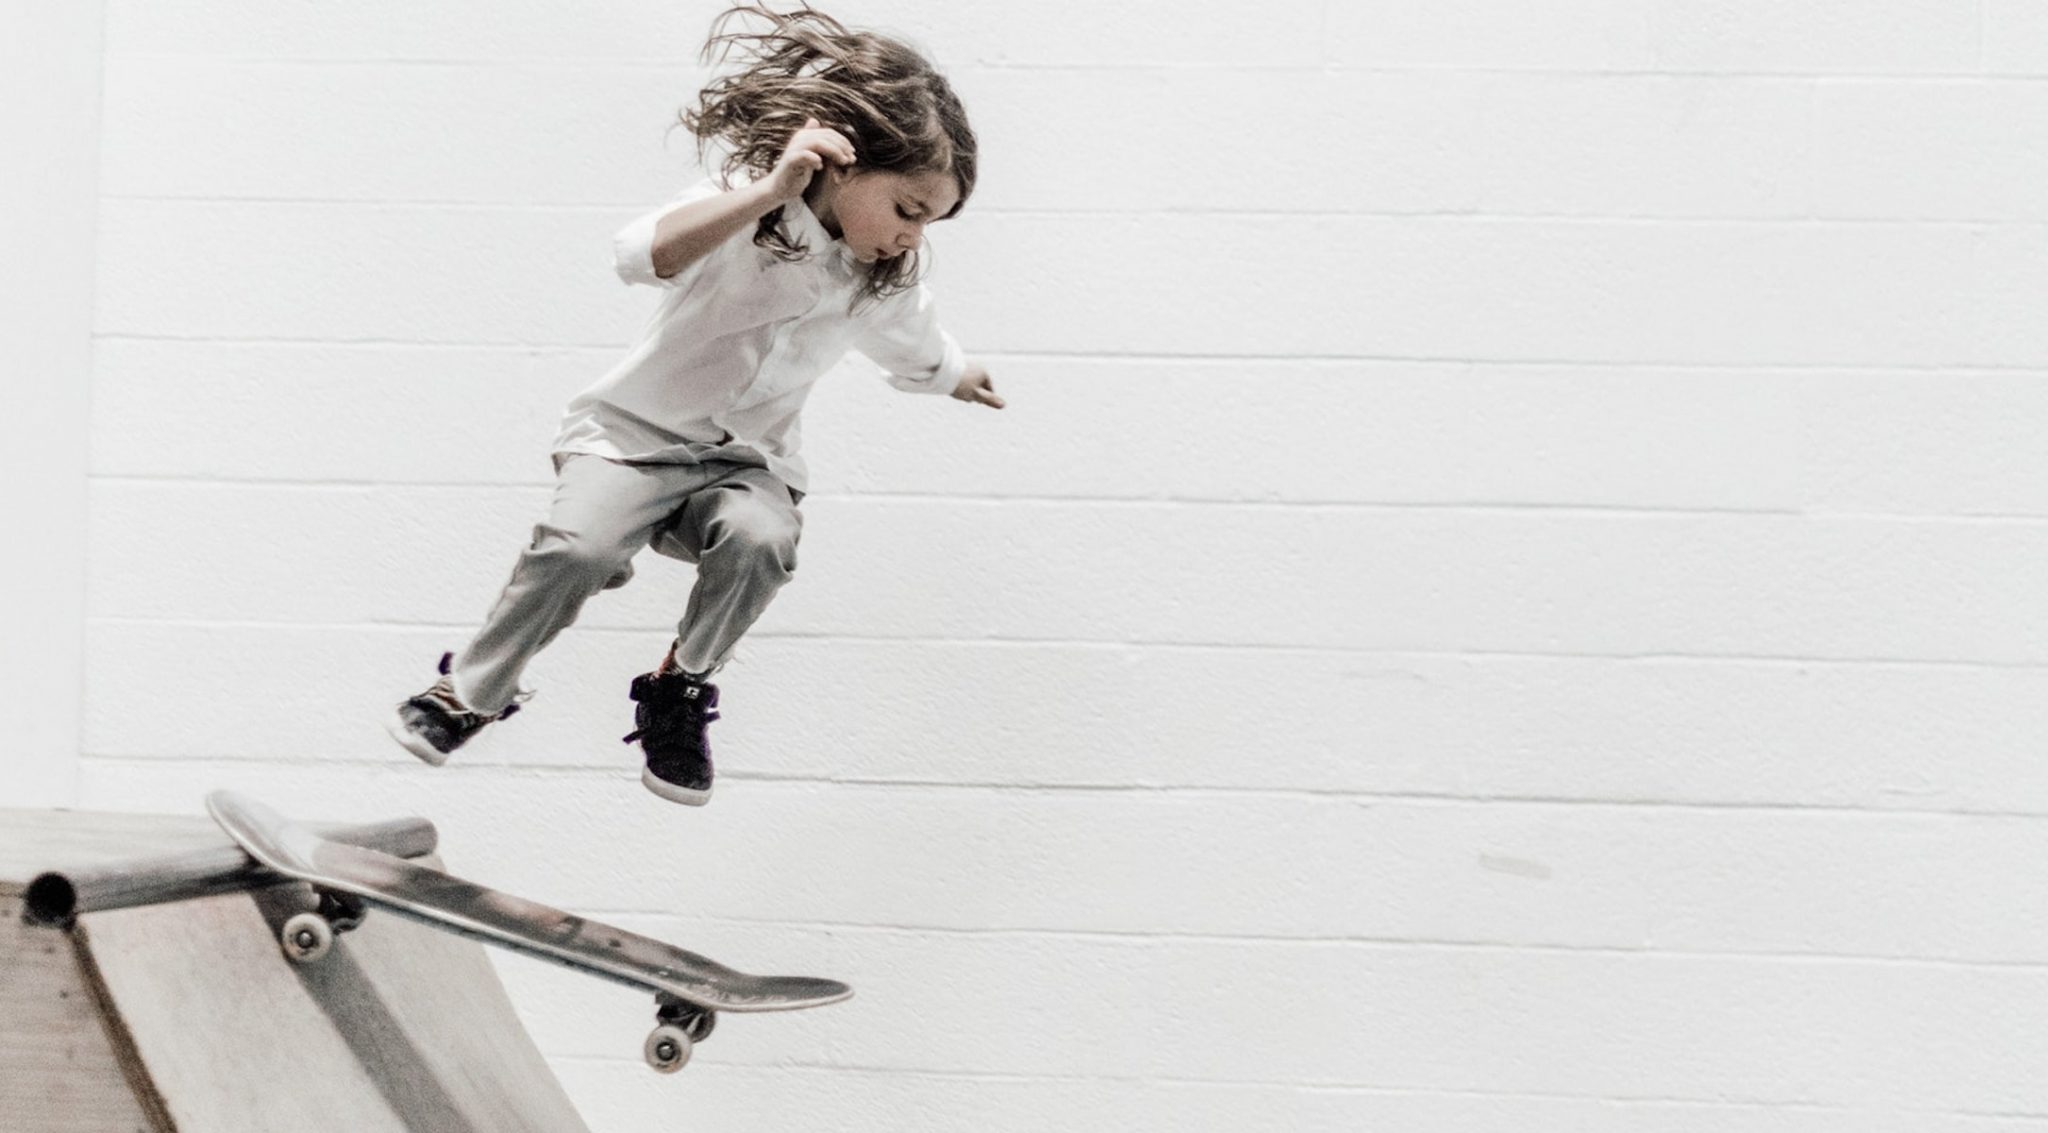 Skate Like a Girl: How forms support a positive tool for change